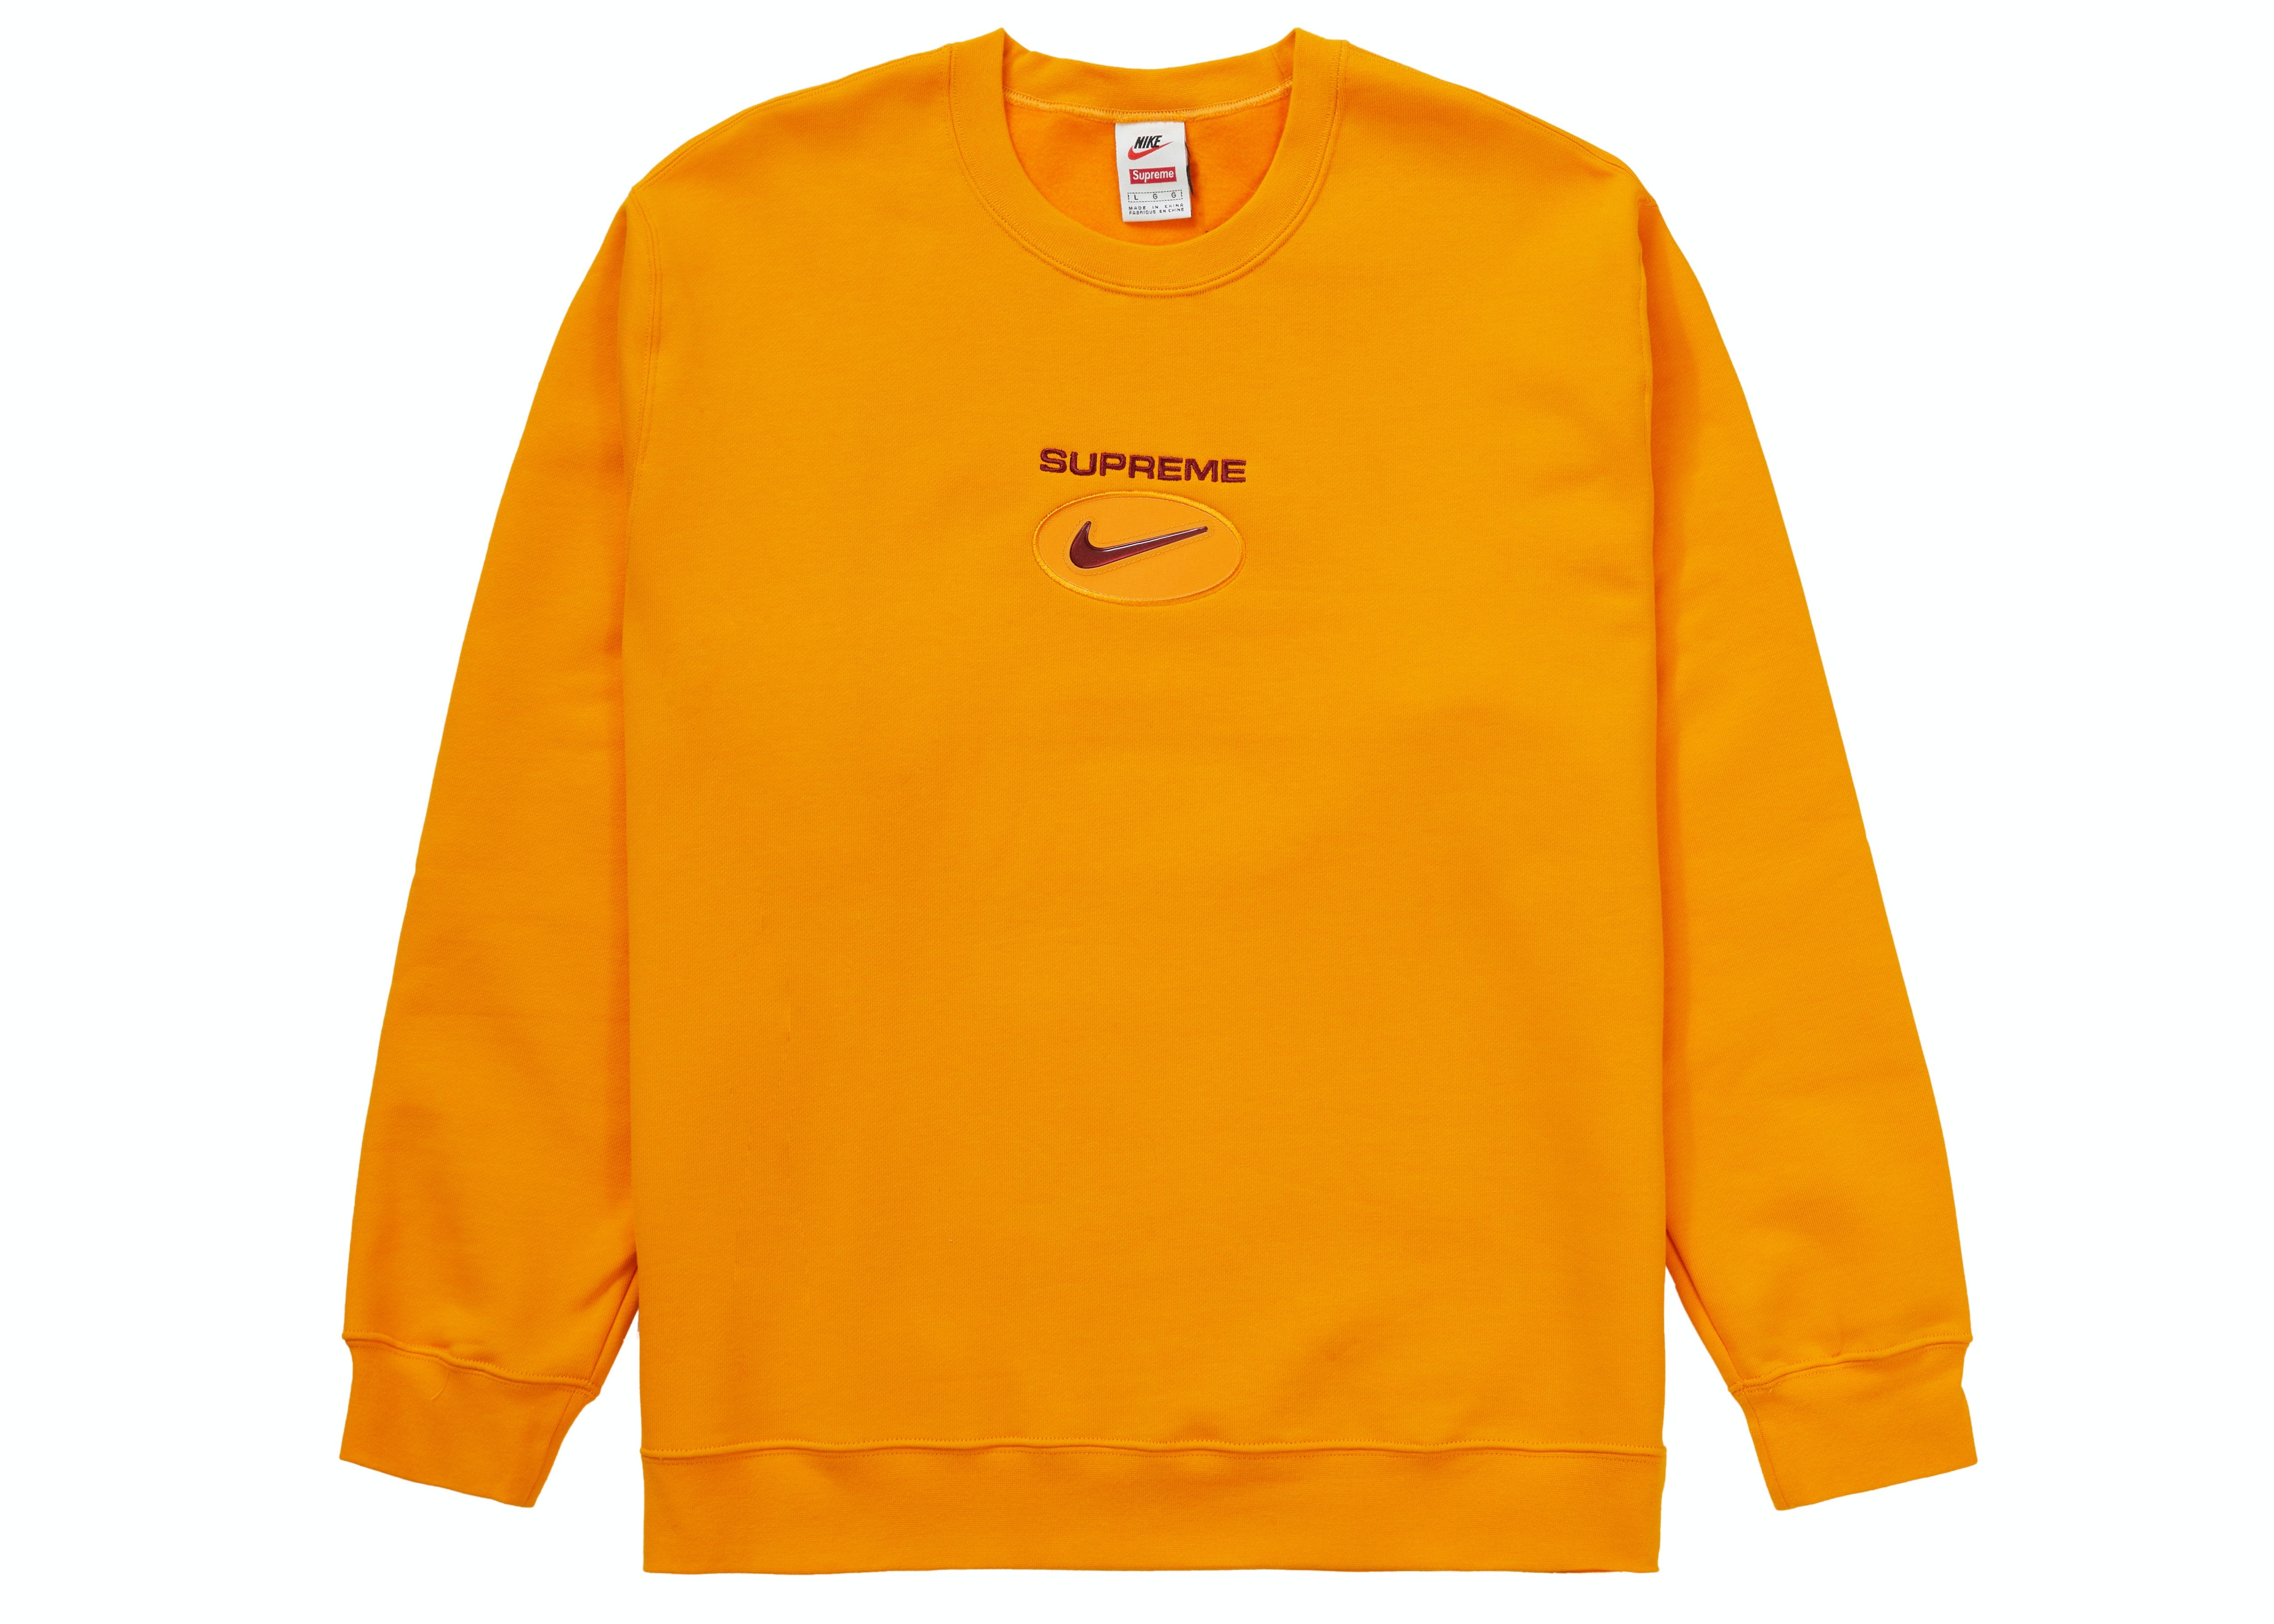 Check Out The Supreme Nike Jewel Crewneck Orange Available On Stockx In 2021 Long Sleeve Tshirt Men Crew Neck Supreme Logo [ 3641 x 5097 Pixel ]